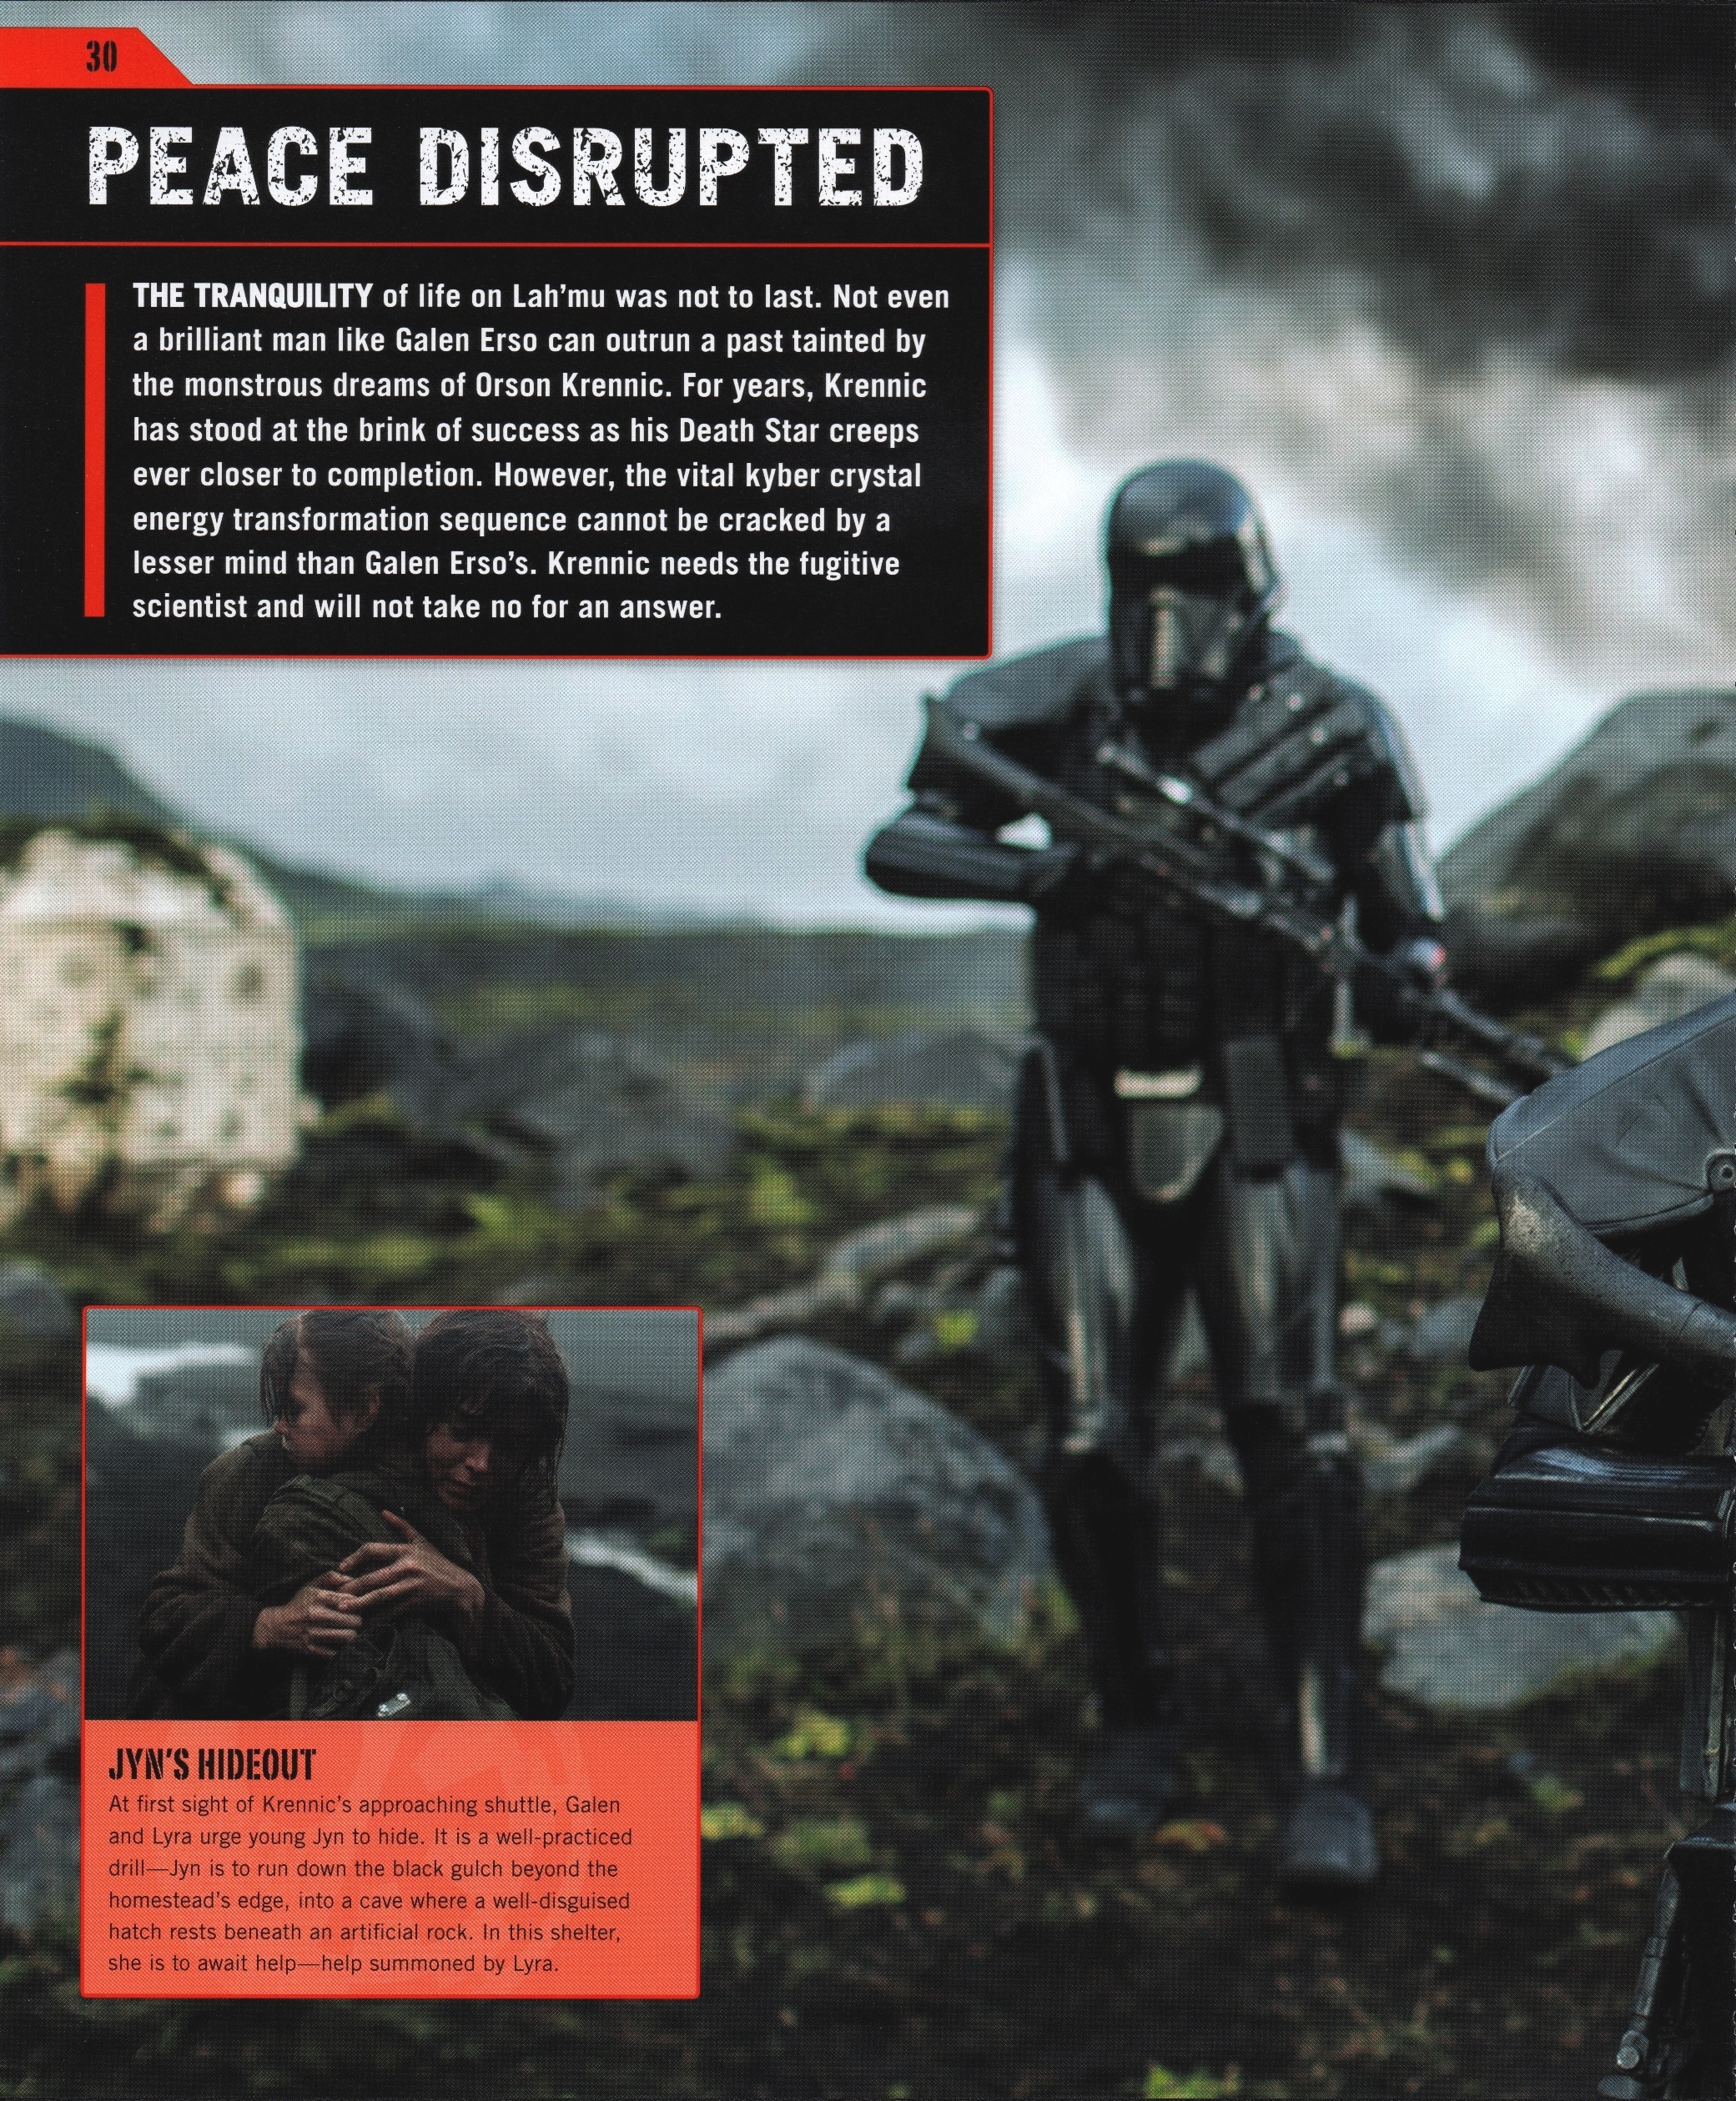 Rogue One Ultimate Visual Guide (b0bafett_Empire) p030